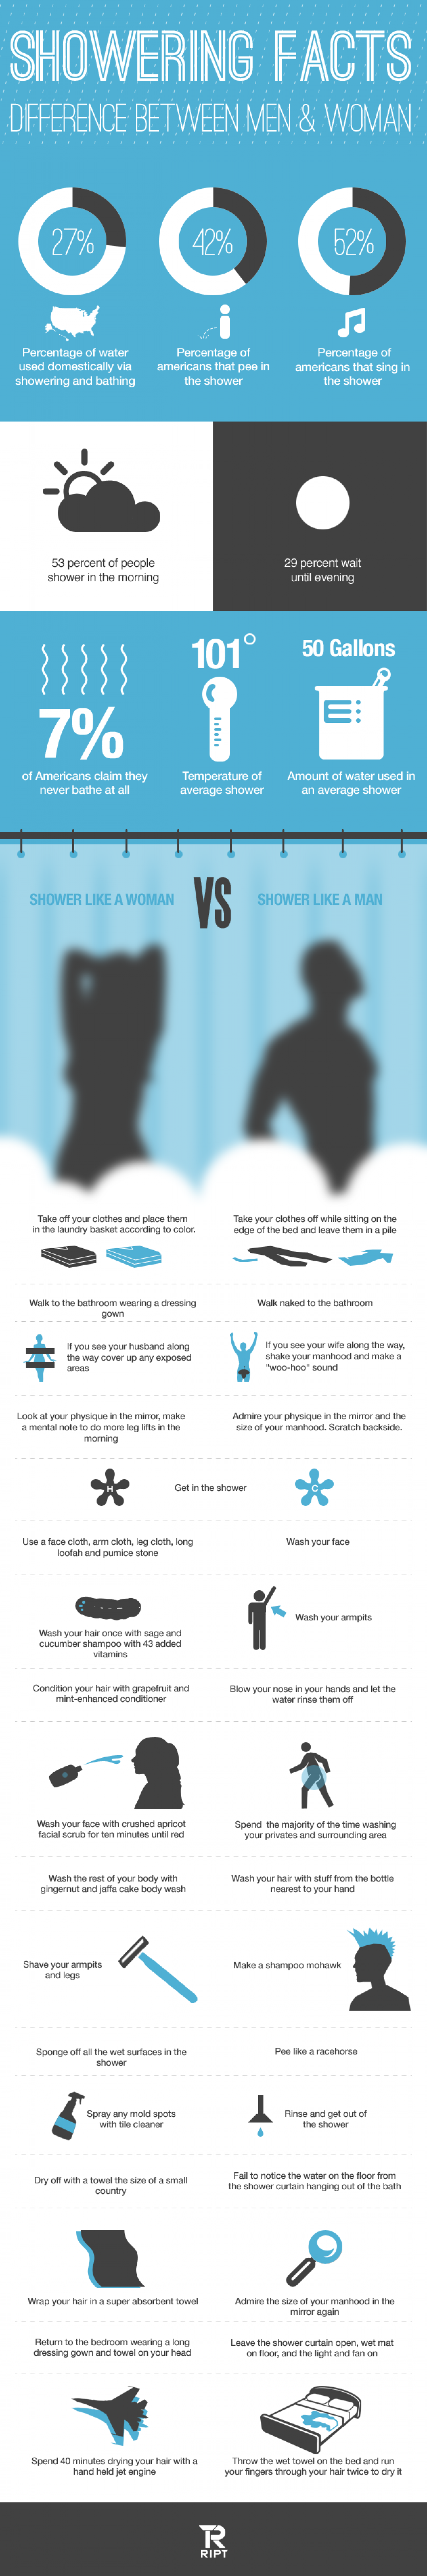 Facts about Showering Infographic